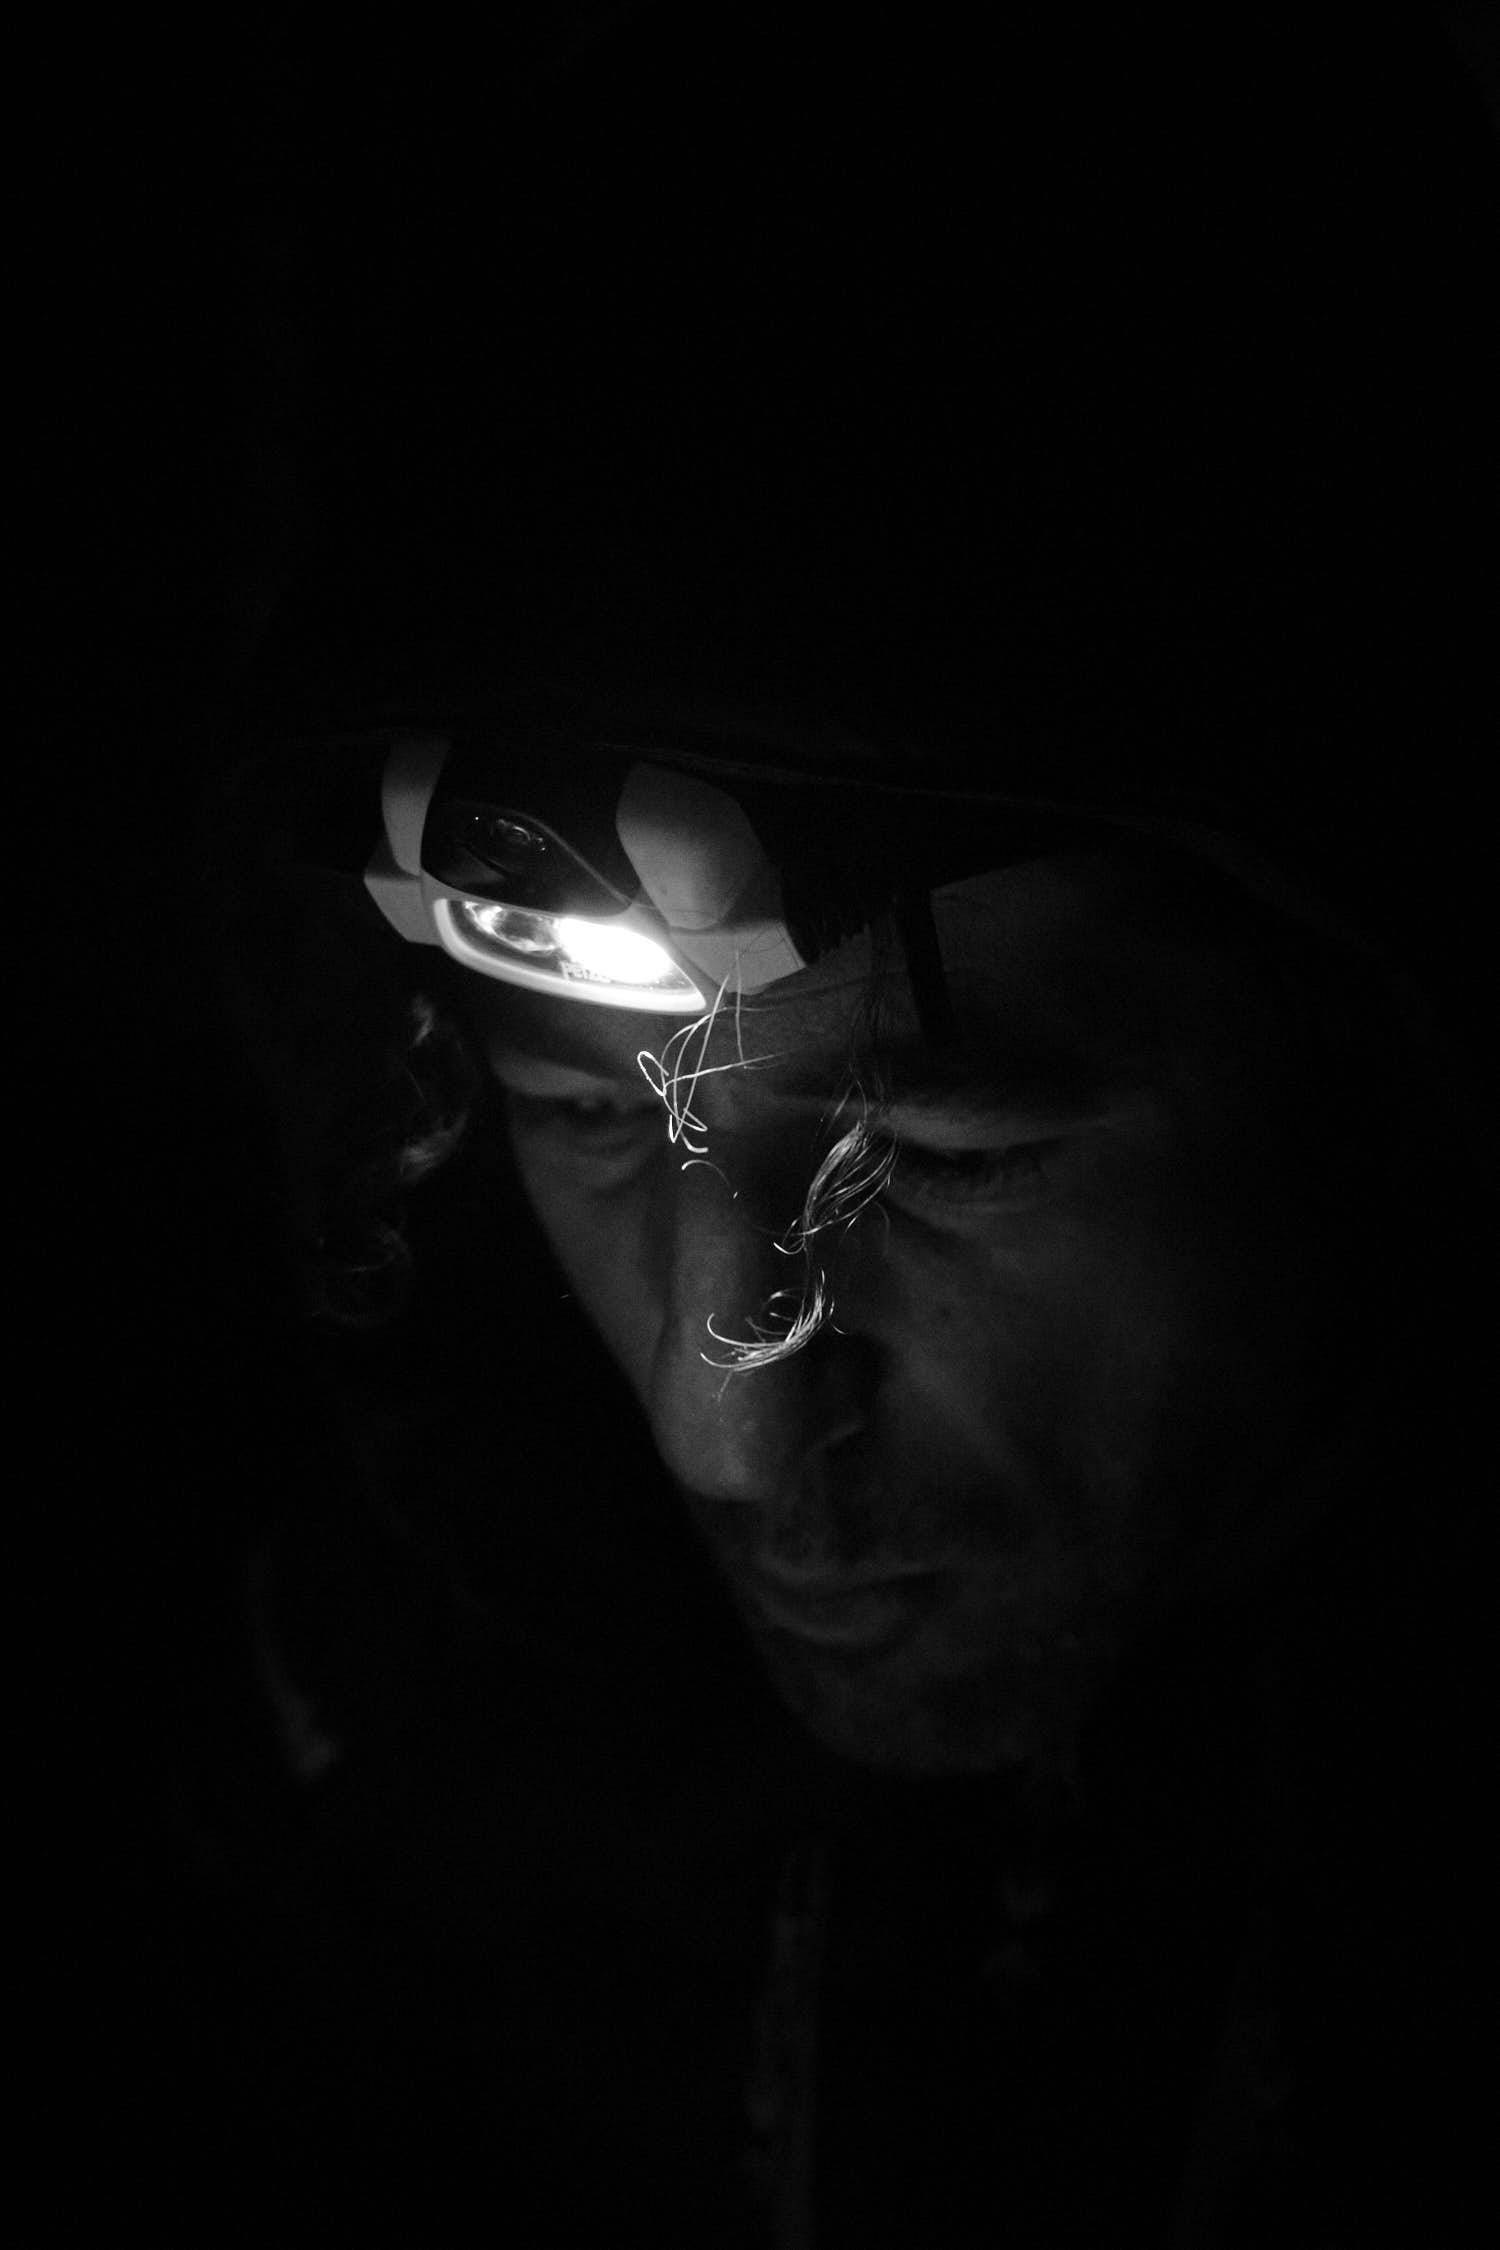 A headtorch iluminates a man face and part of his curly hair. Black and white photography.